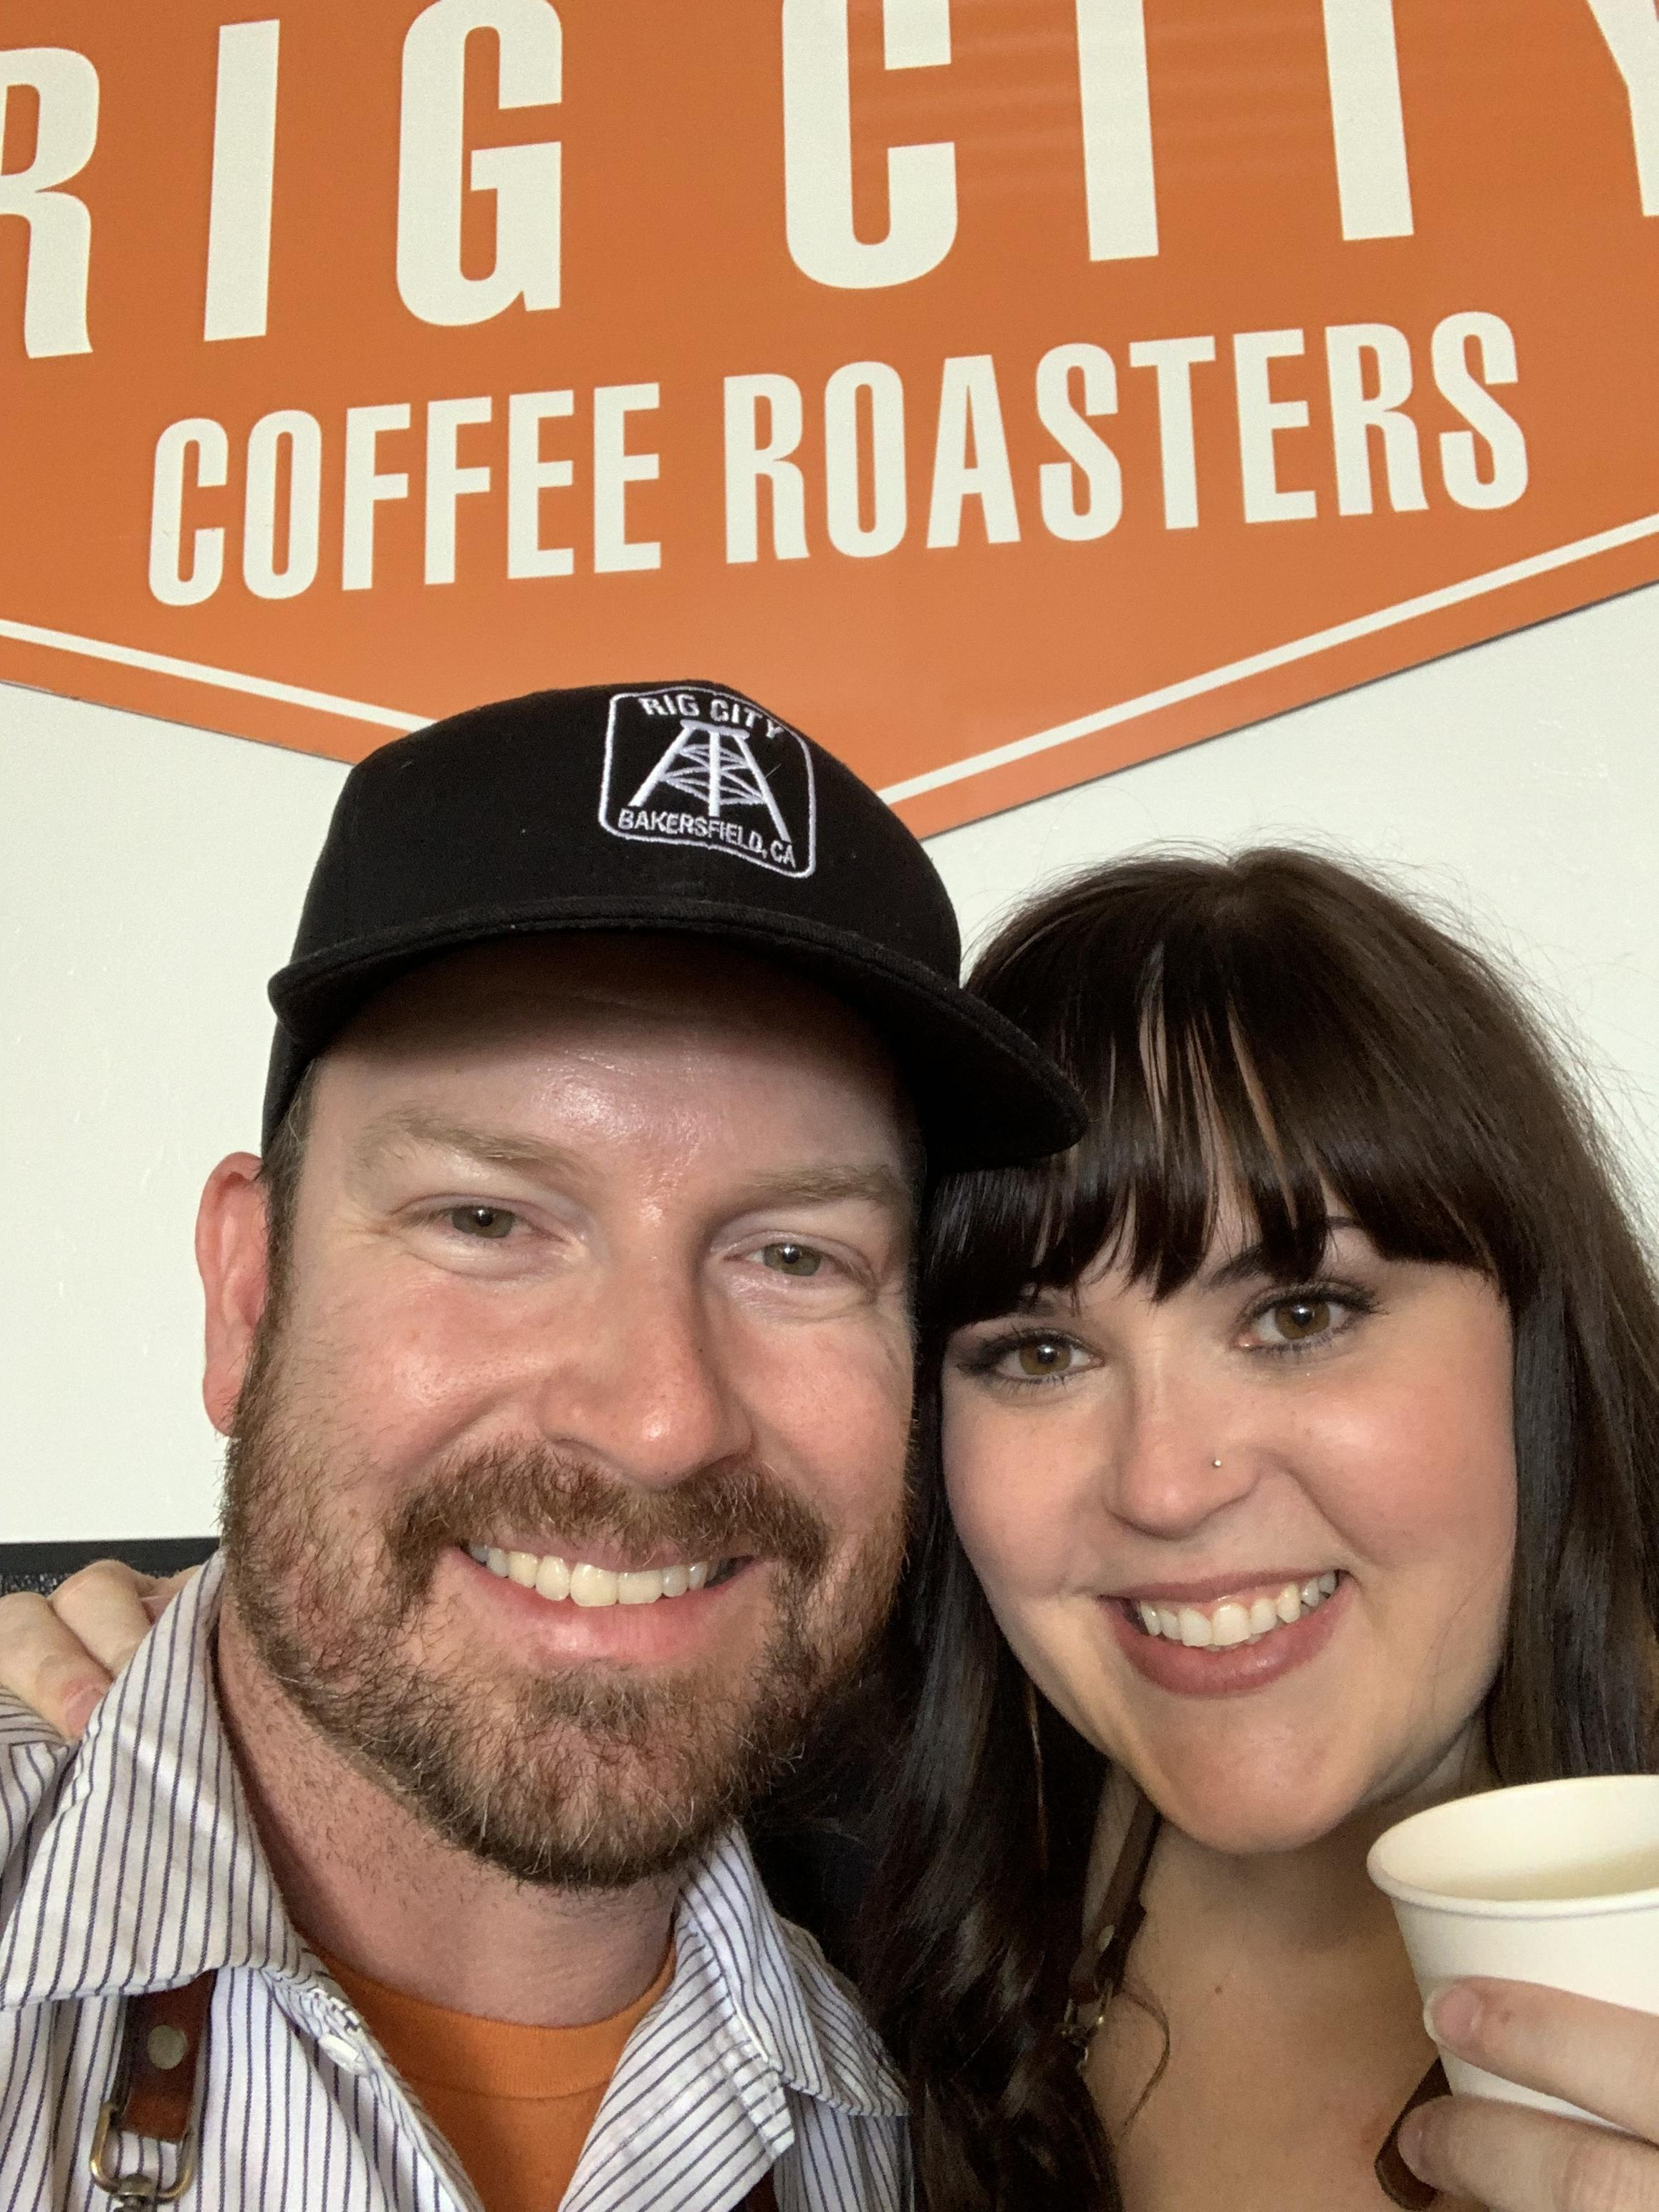 Thank you to Isaac + Shannon for sharing their love of really good coffee with the Bakersfield community.